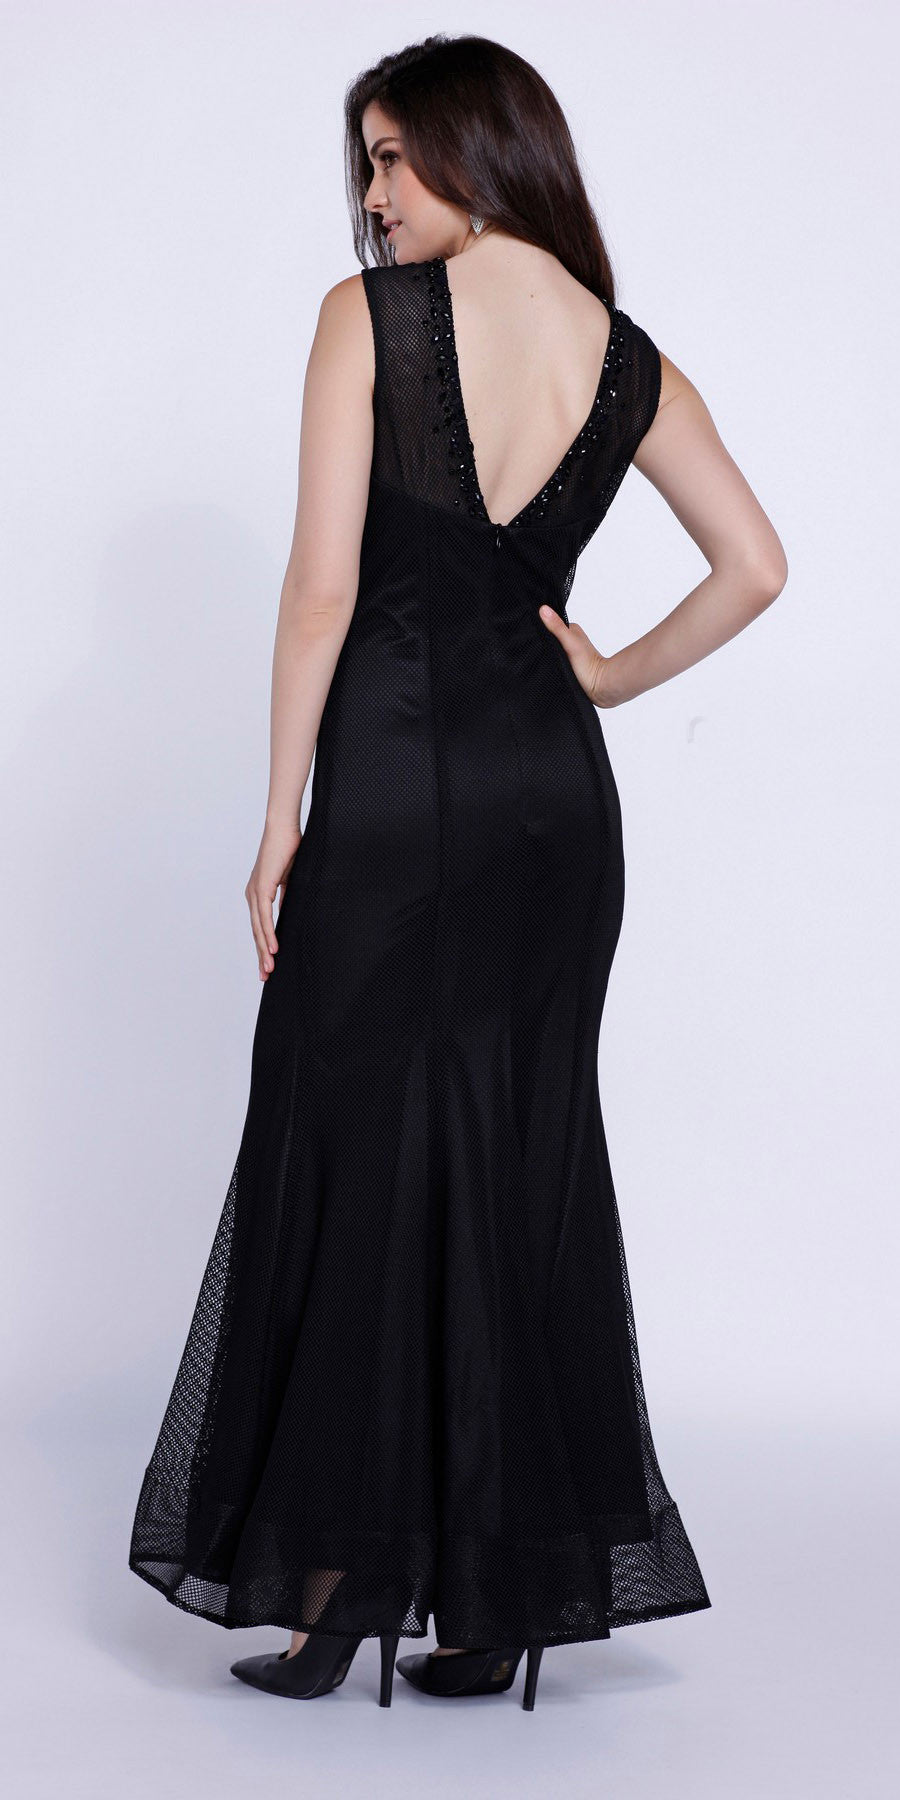 Jeweled Neckline Fit and Flare Sleeveless Gown Black